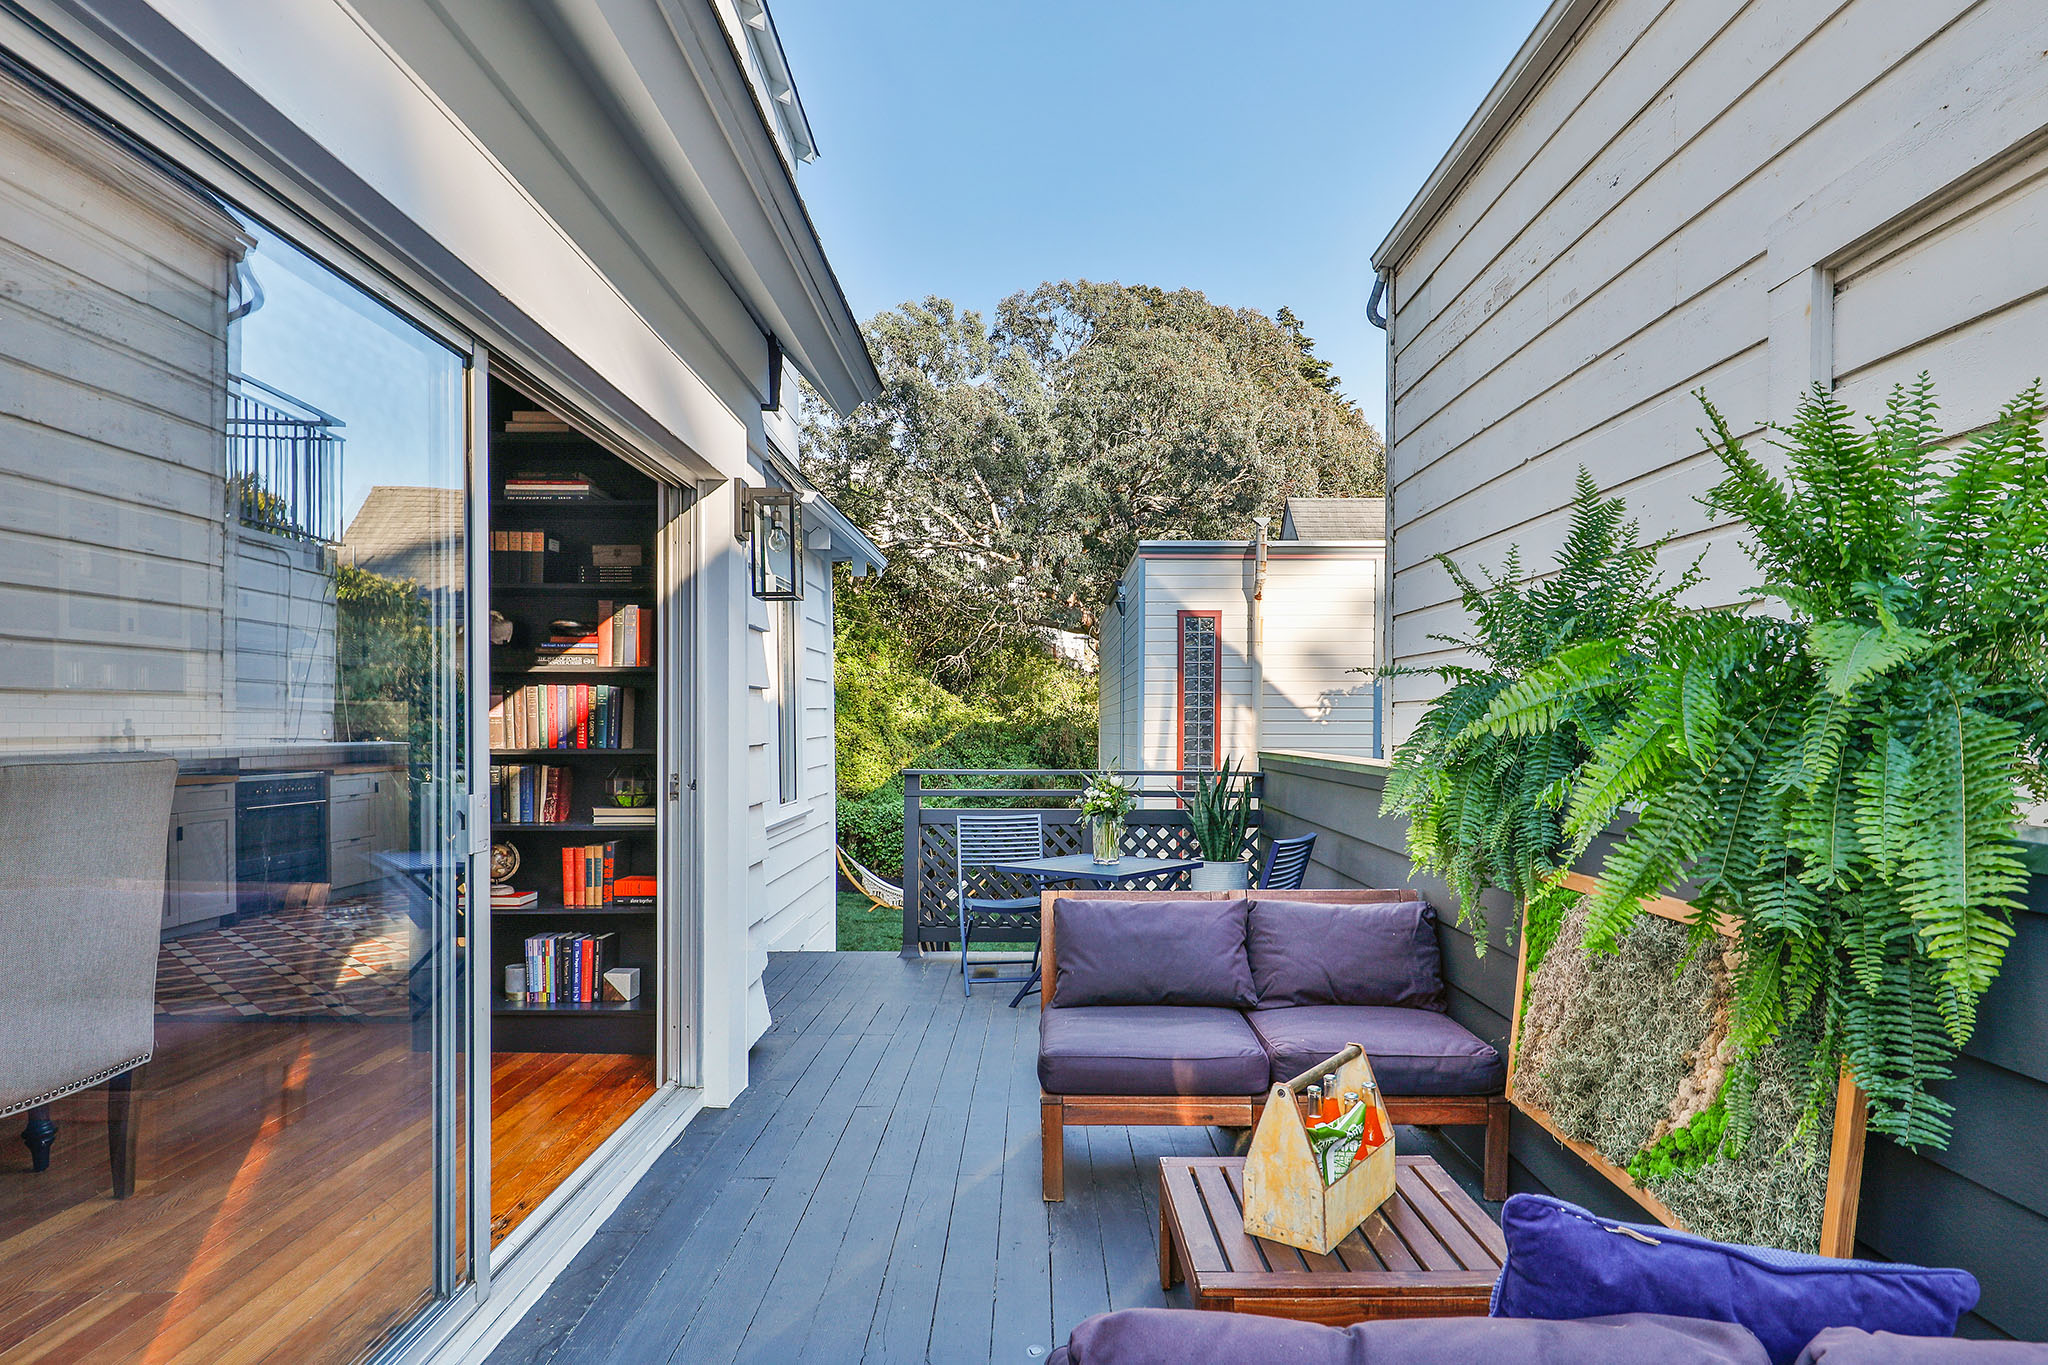 SF Real Estate - Deck with Sitting Area